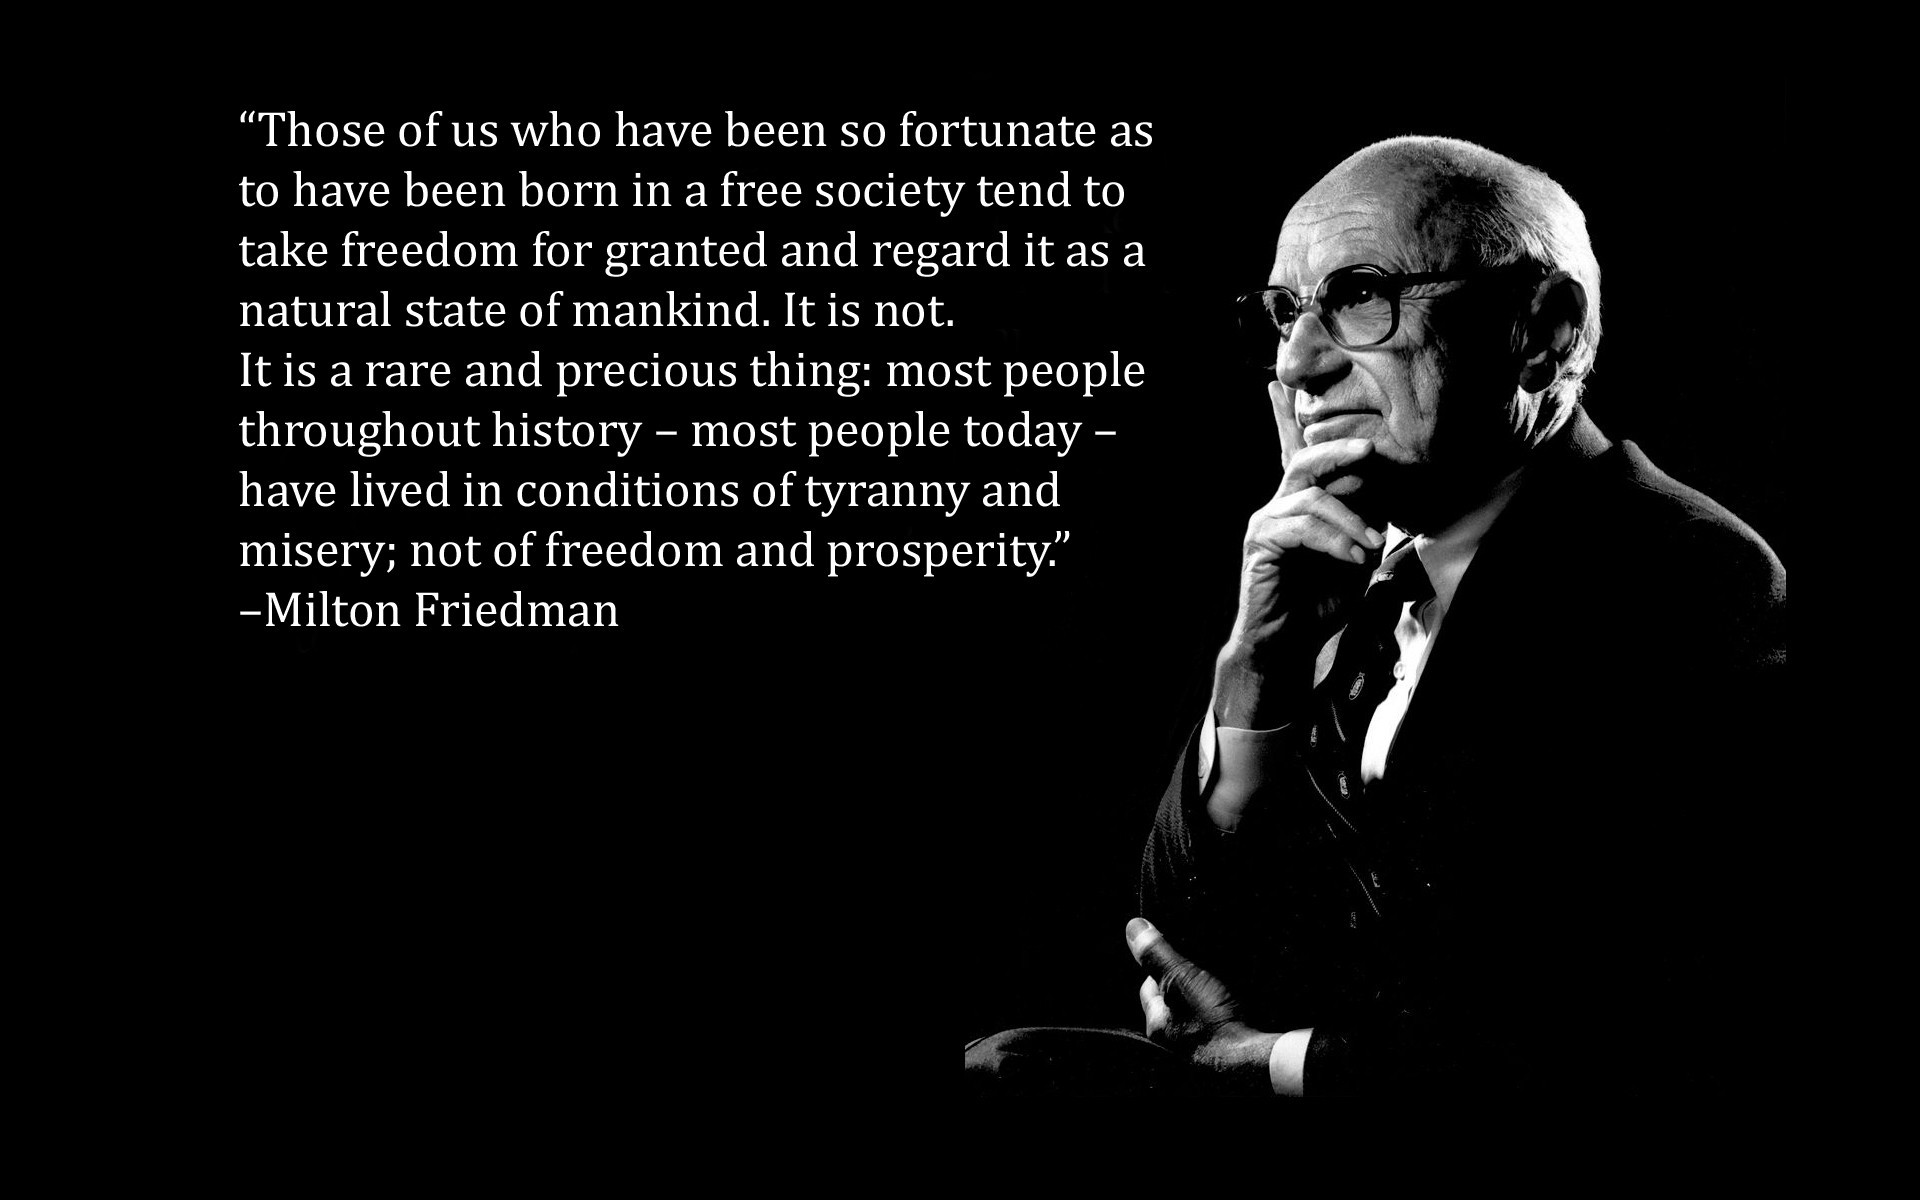 text quotes black background milton friedman x text quotes black background milton friedman 1920x1200 185063 up